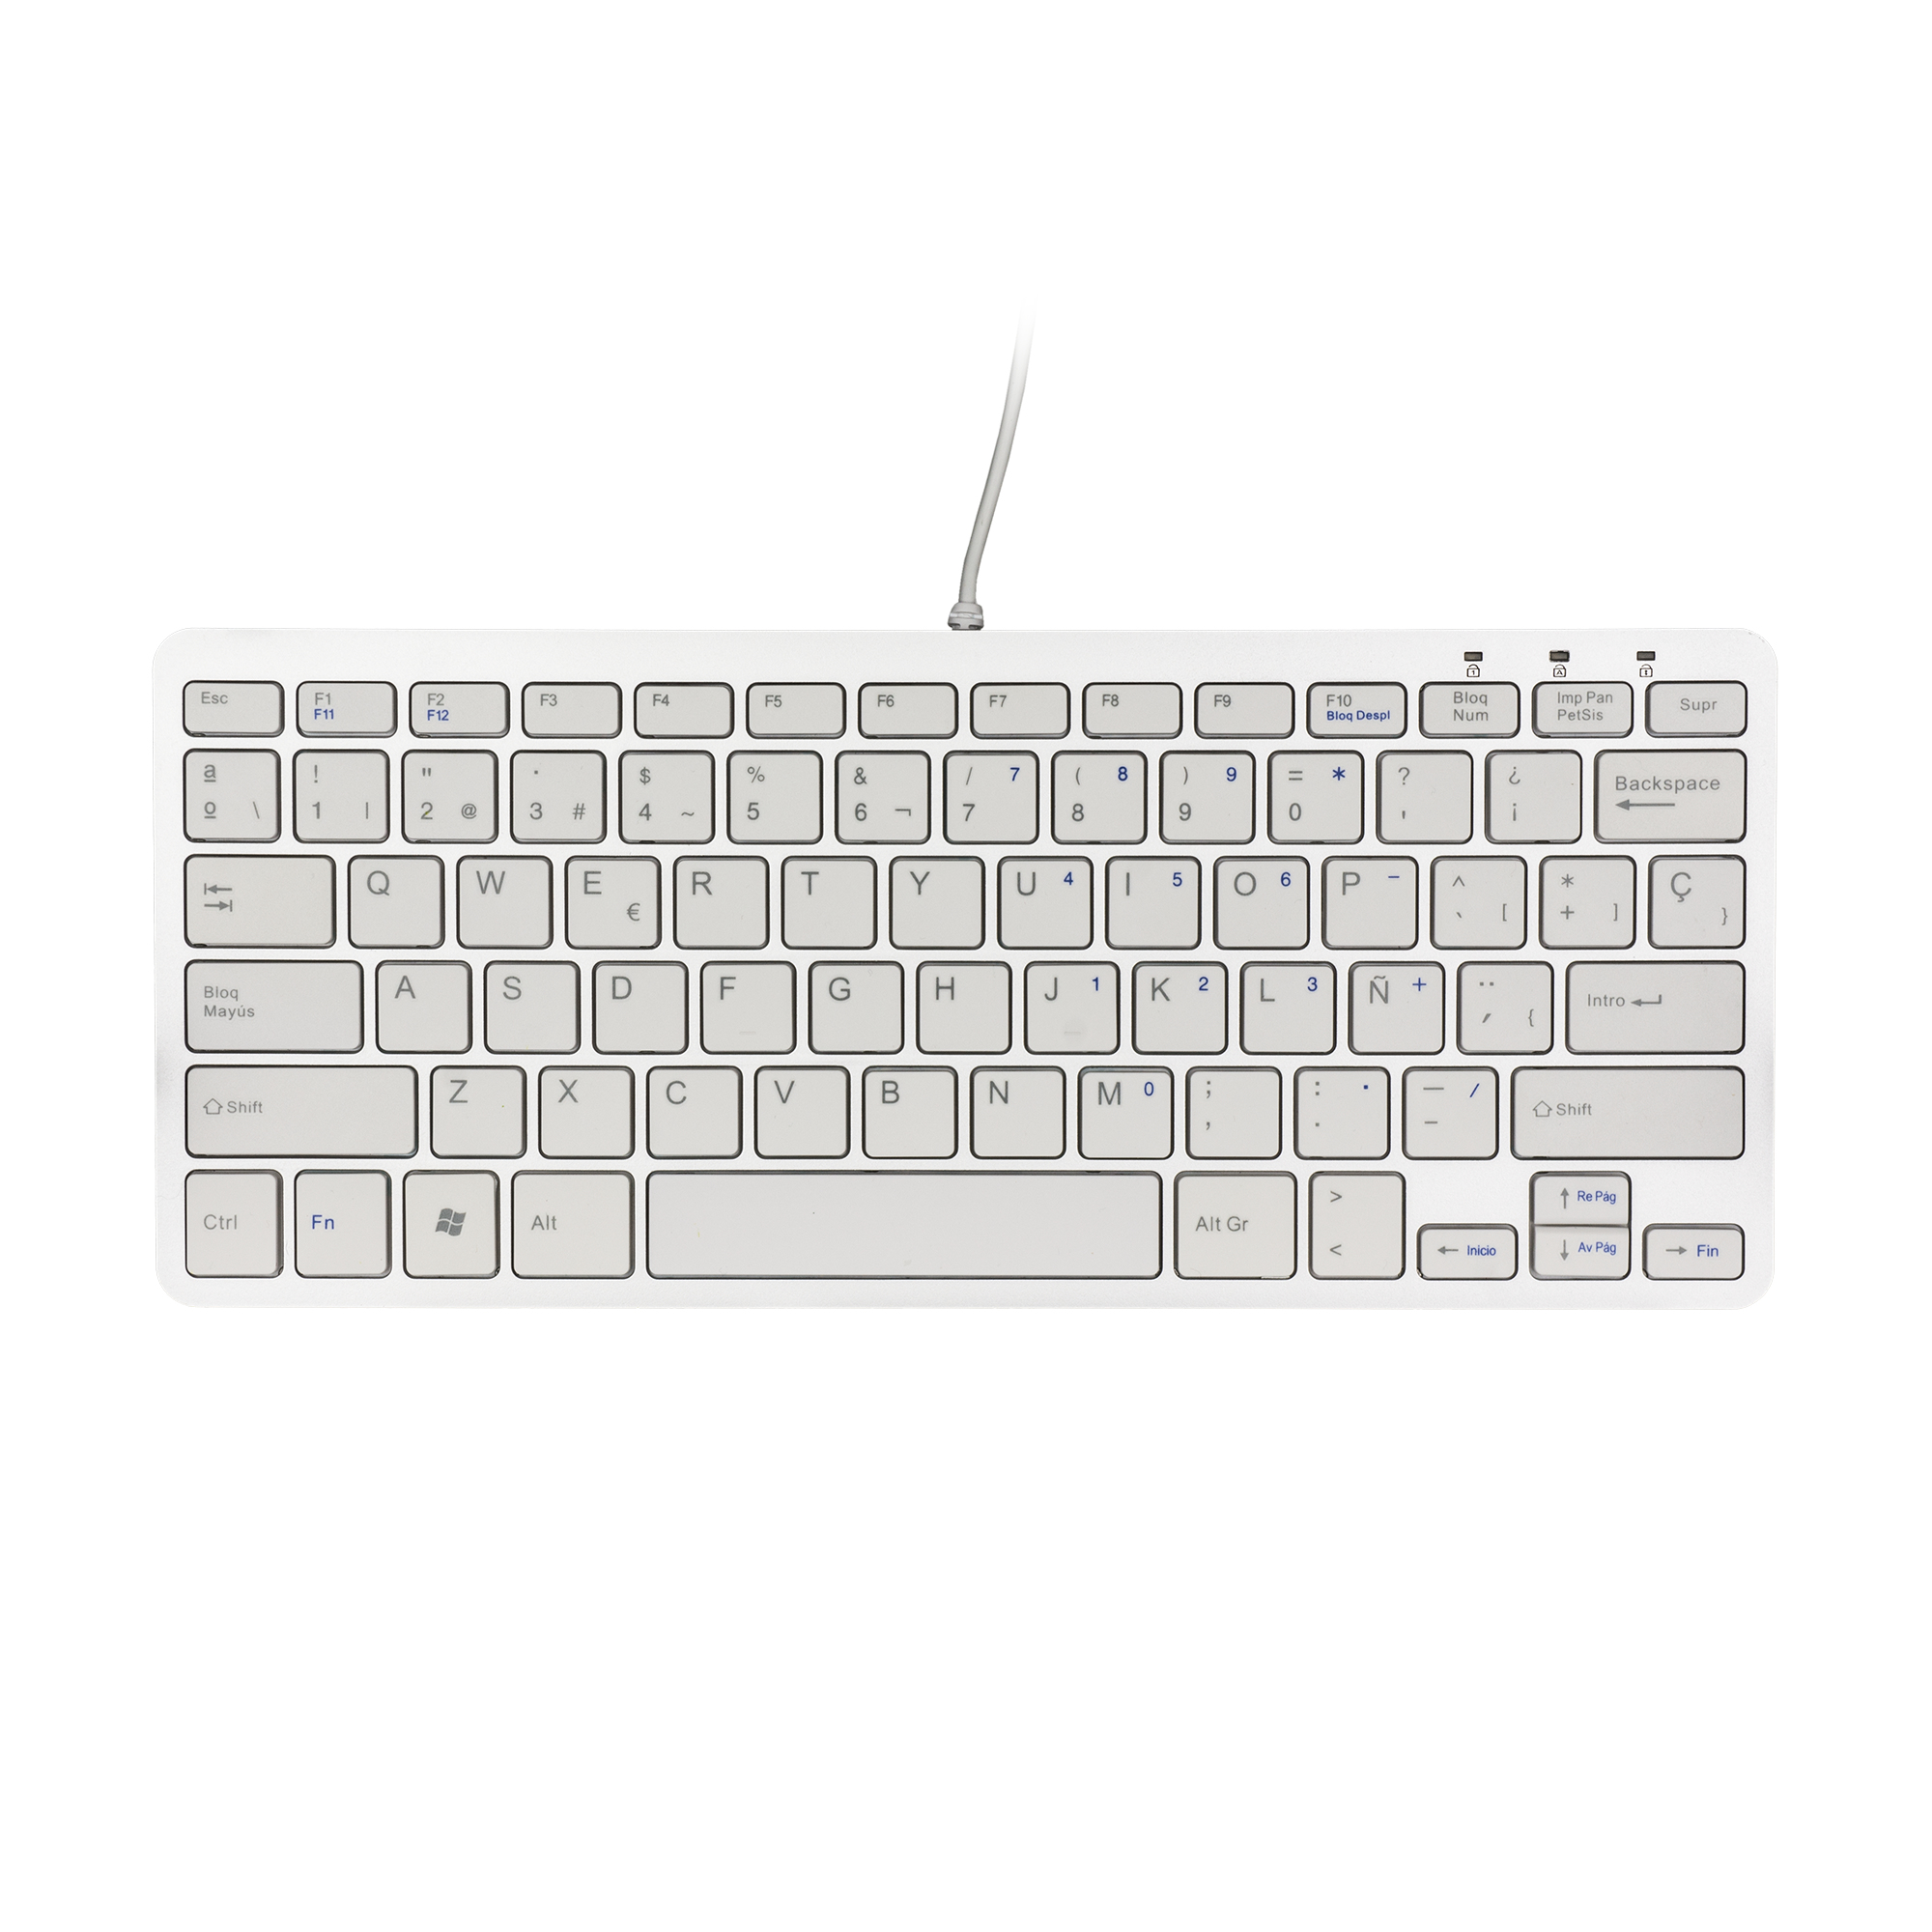 R-GO TOOLS RGOECESPW COMPACT KEYBOARD, QWERTY (ES), WHITE, WIRED